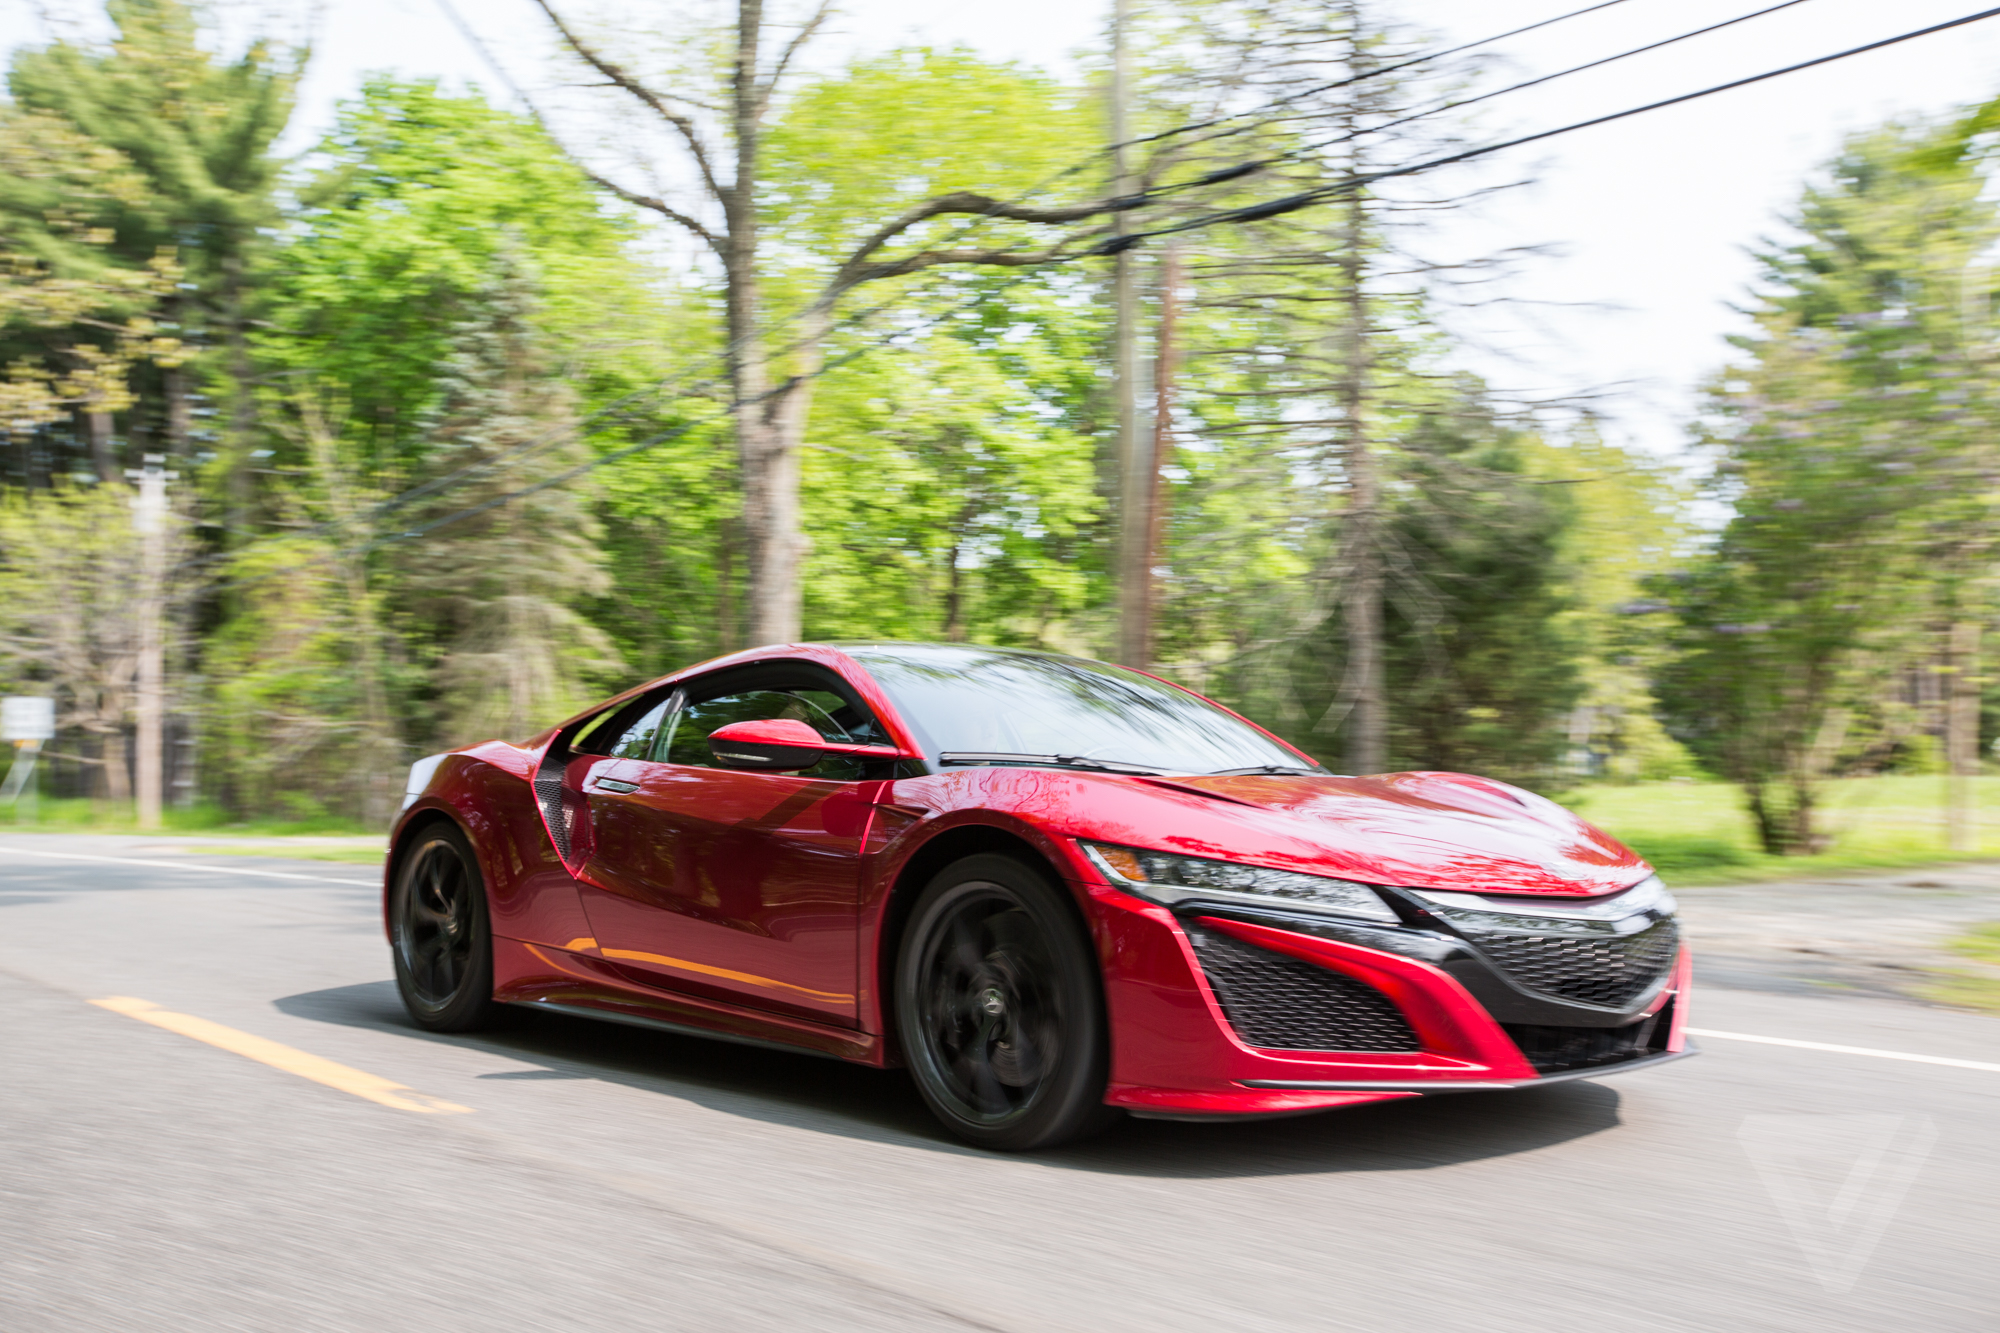 acura nsx review  gentler supercar  verge